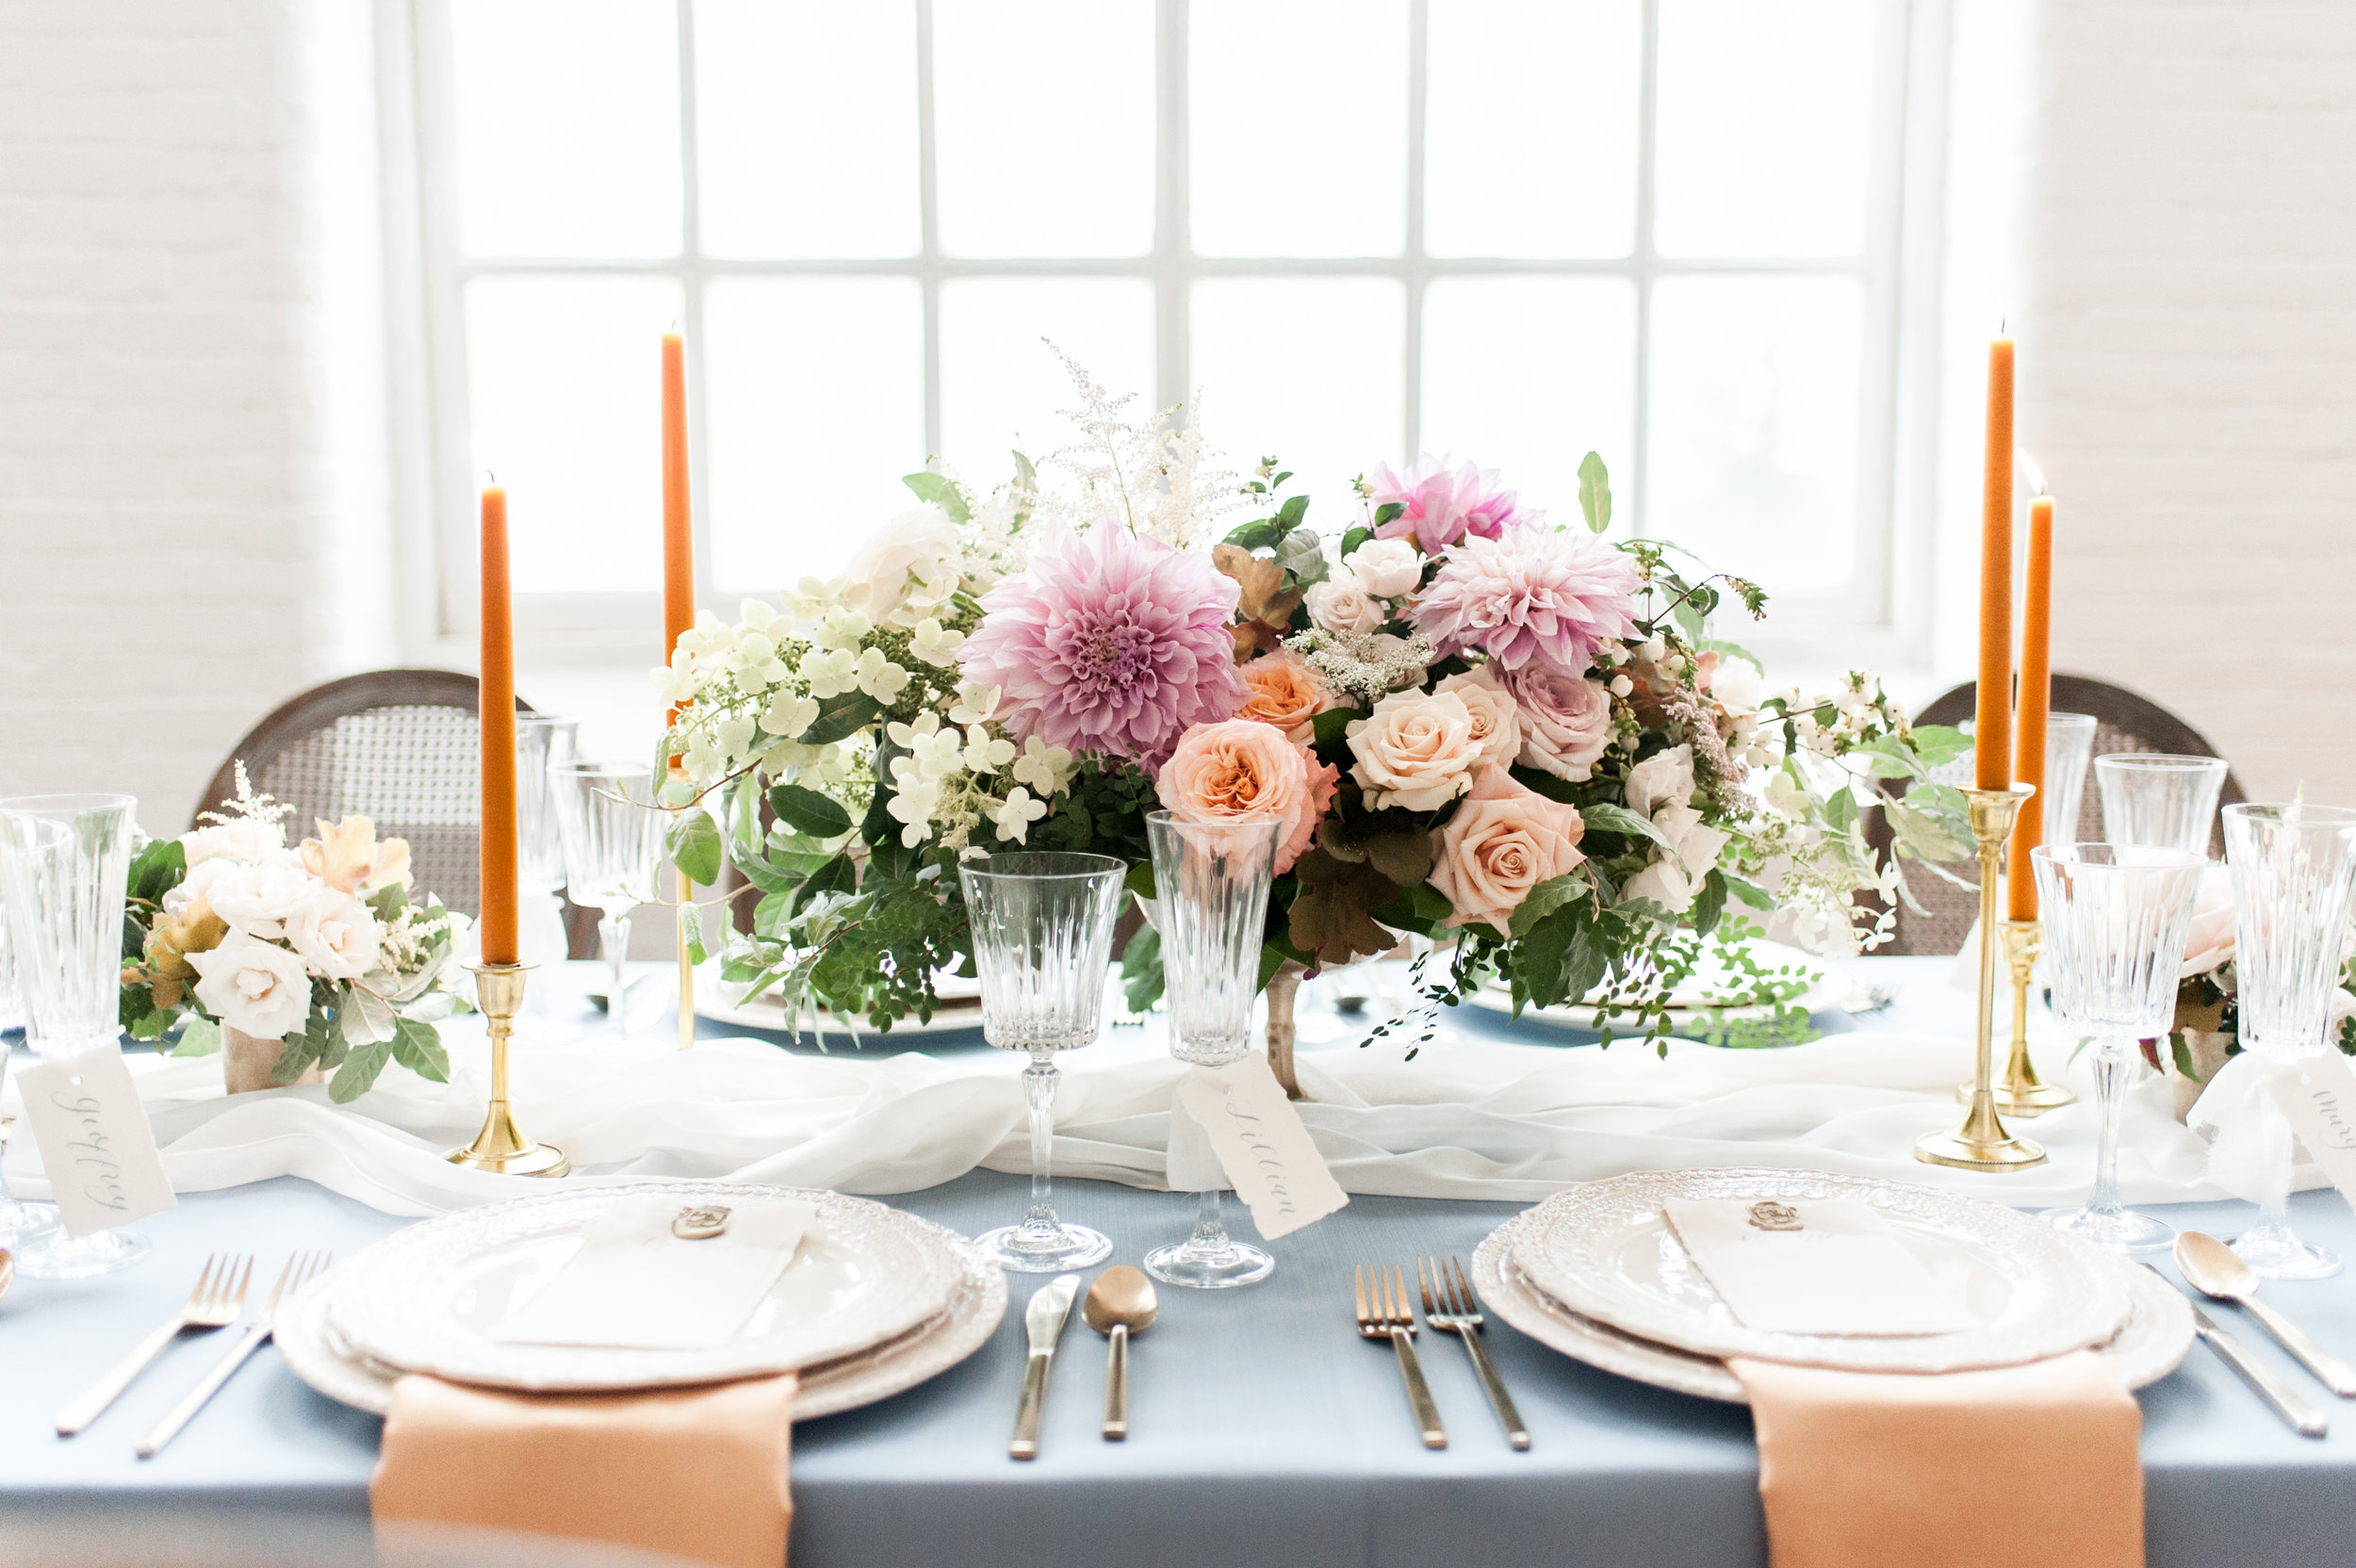 Styling by Urban Soiree Boston, Rentals by PEAK, Linens by BBJ Linen, Florals by Berry Branch Designs